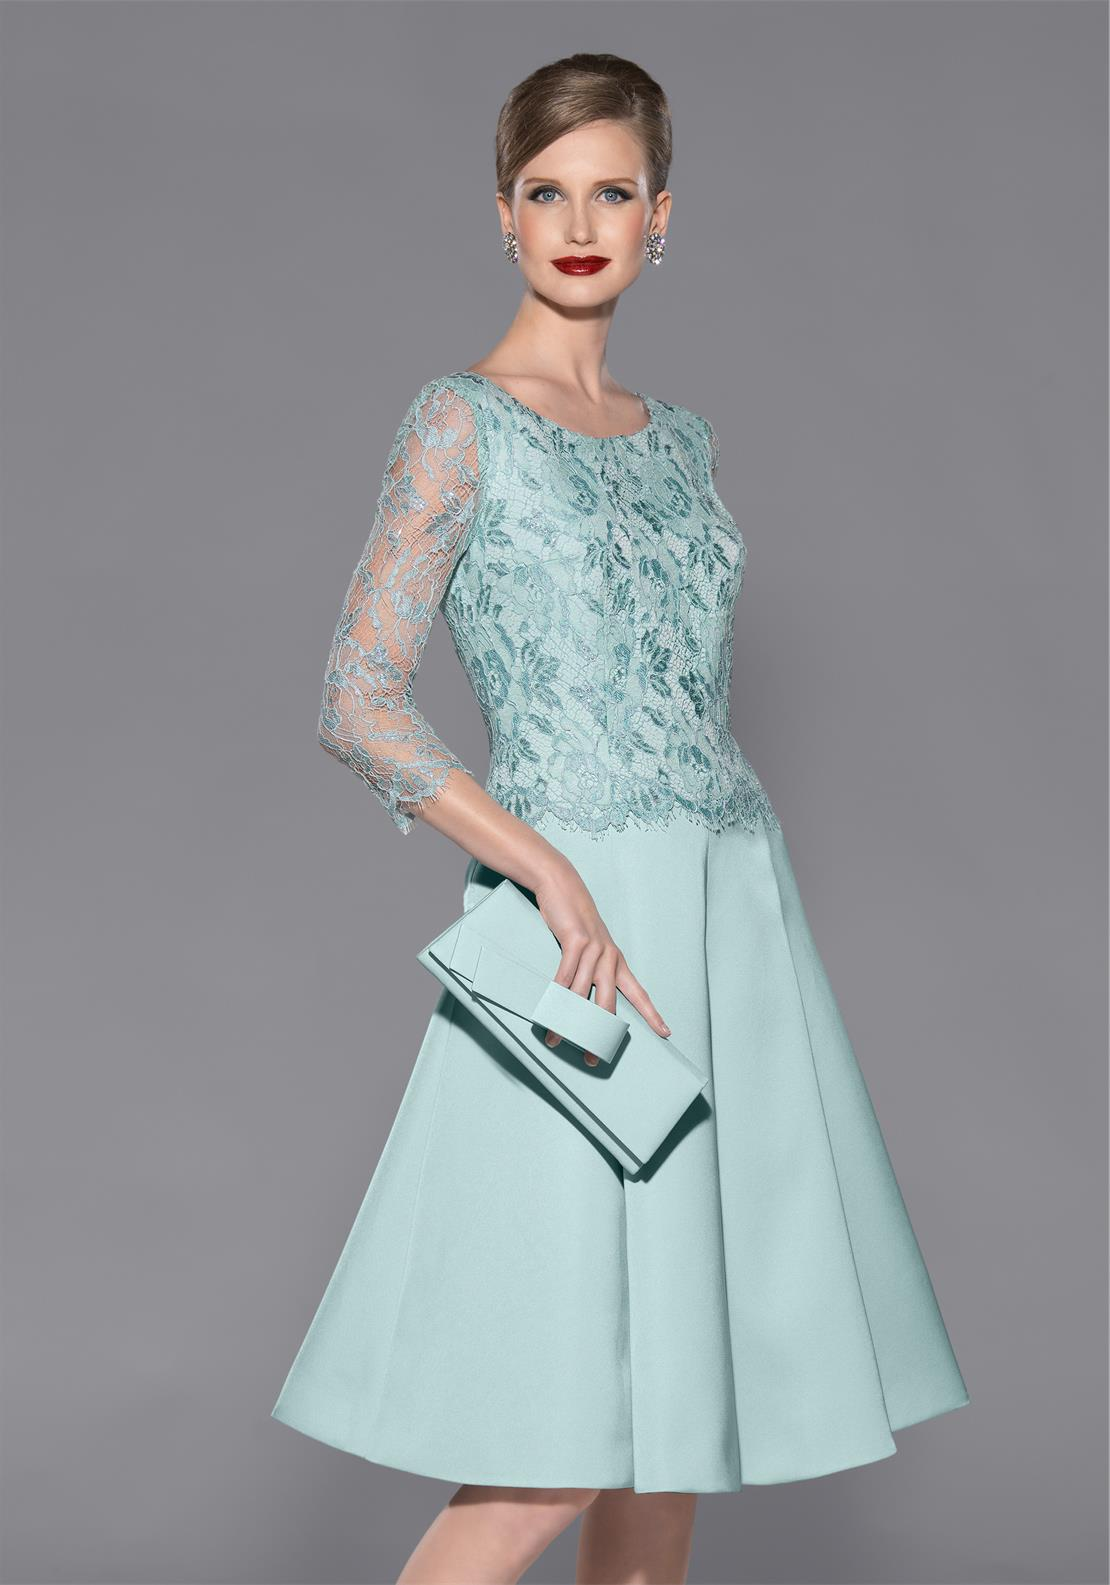 Teresa Ripoll Lace Overlay Fit and Flare Dress, Mint